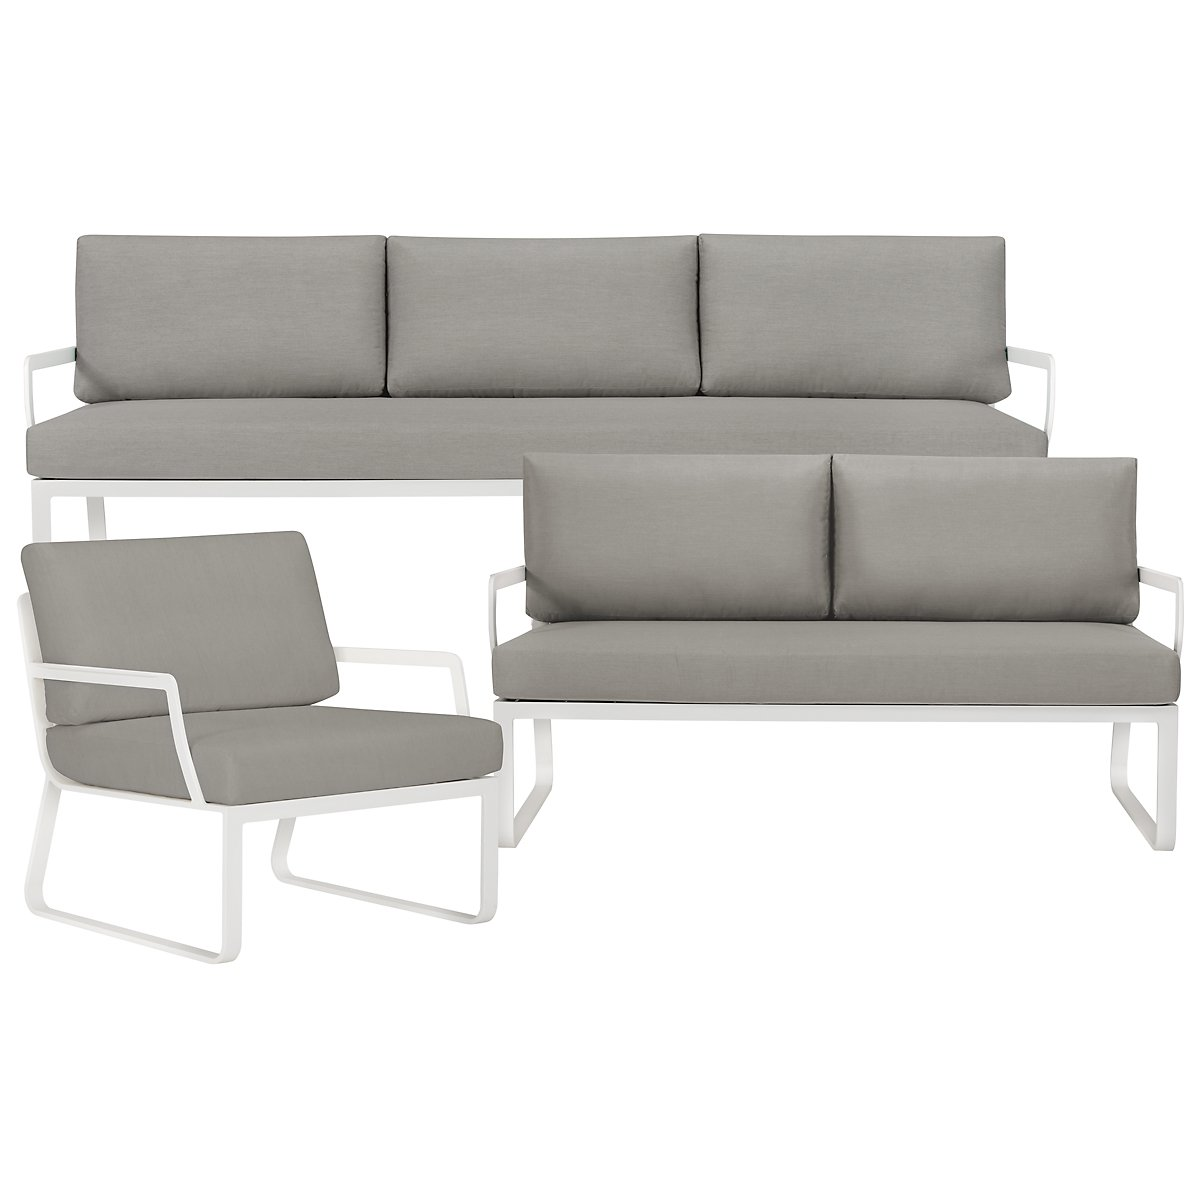 City Furniture Ibiza Gray Outdoor Living Room Set